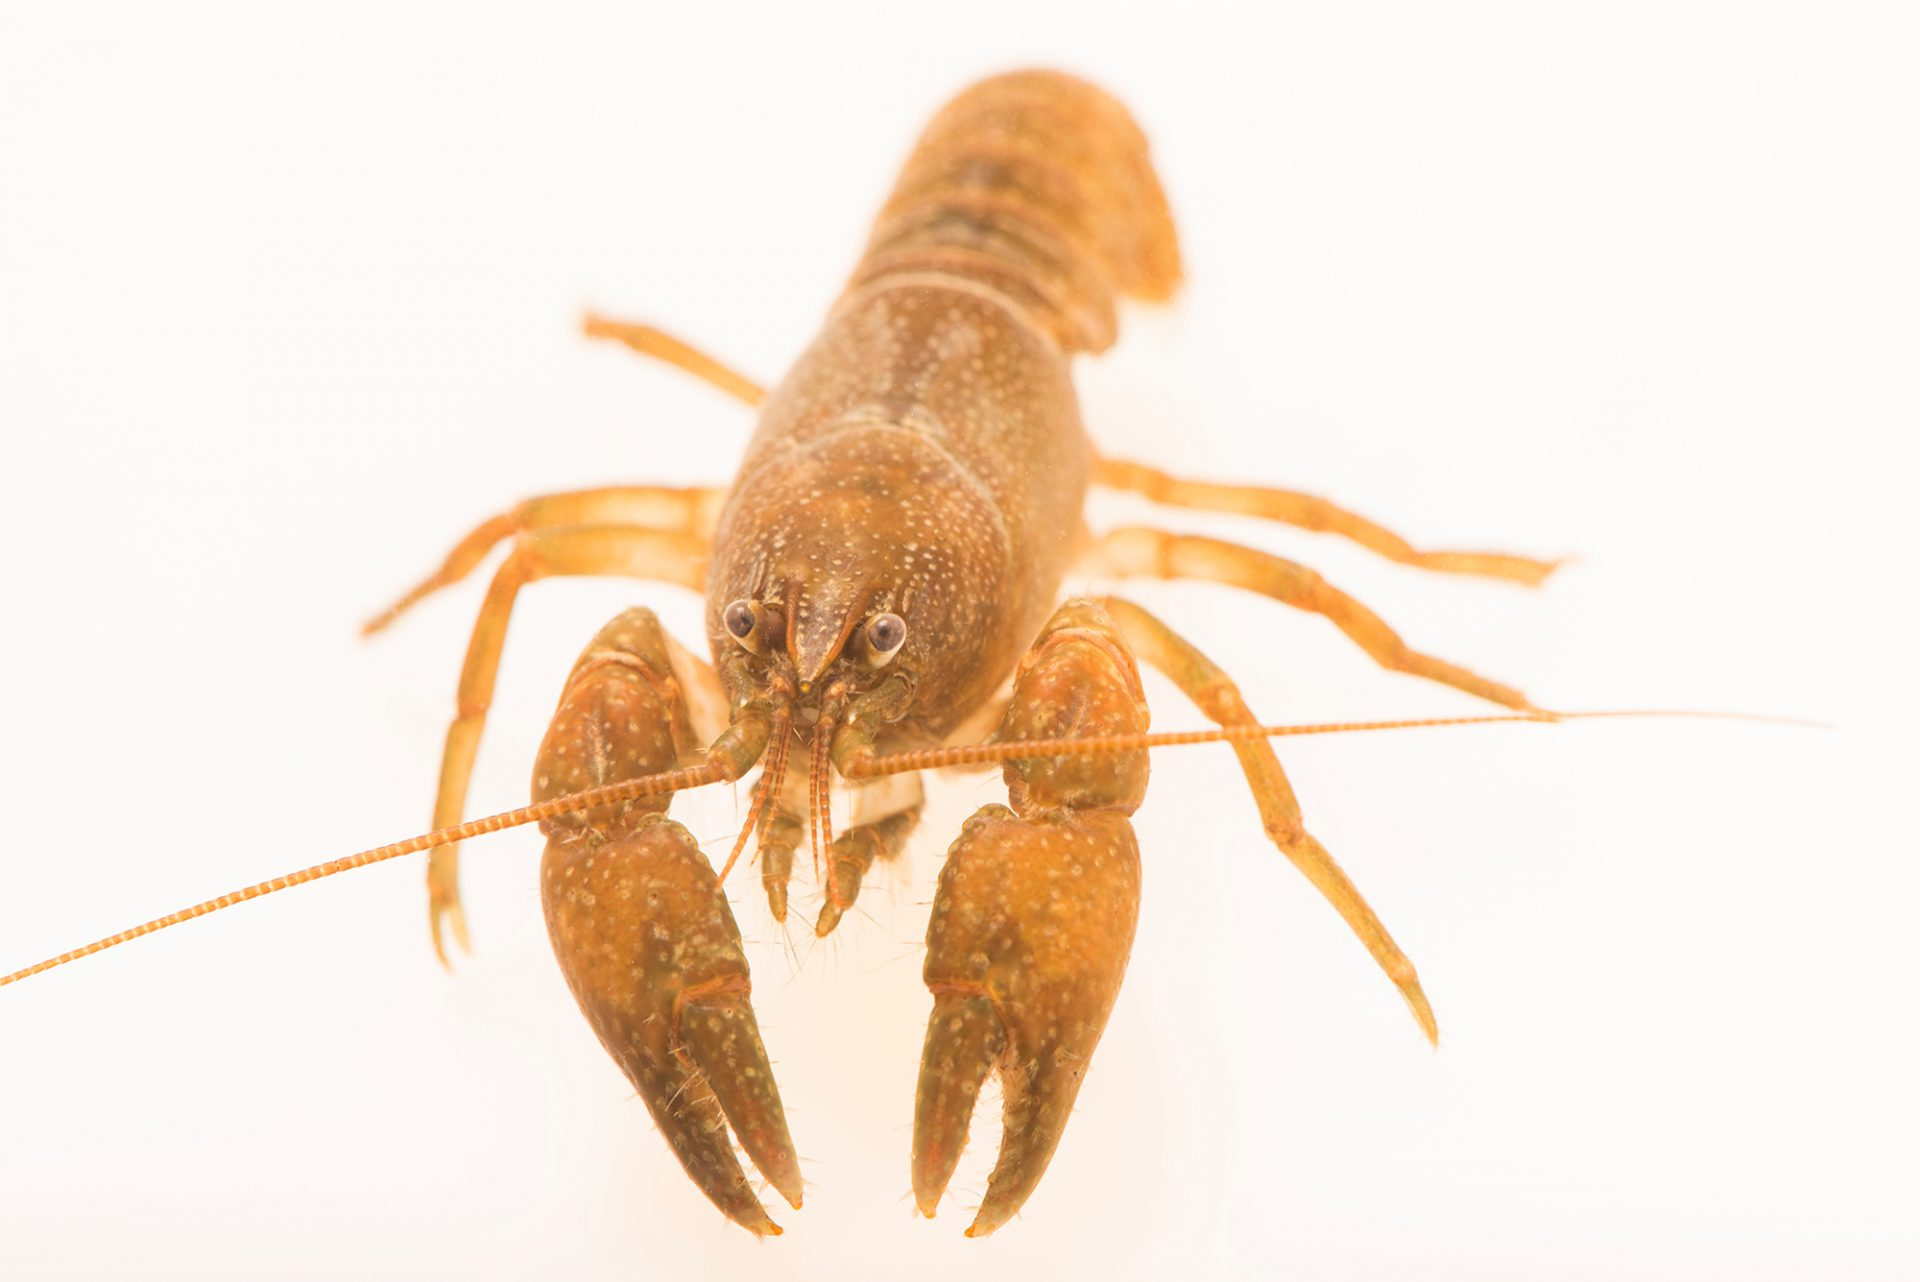 Photo: An undescribed crayfish, Cambarus glarecola sp., at the Crayfish lab in West Liberty University in West Liberty, WV. This specimen is from Fortyeight Creek, TN.